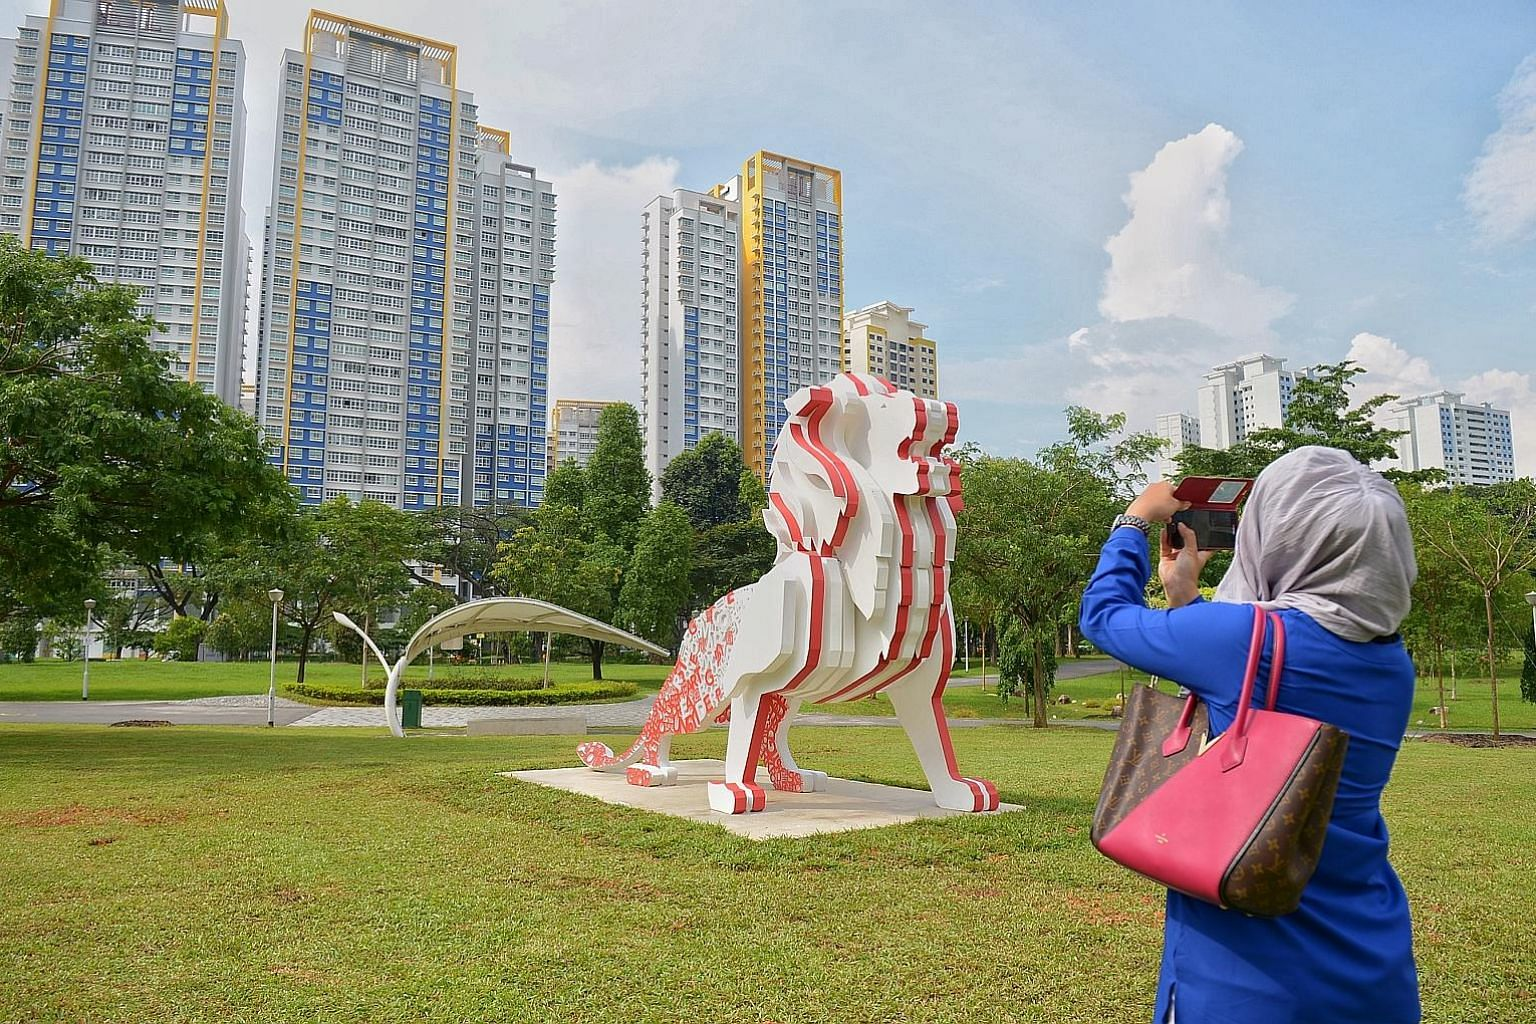 The iconic lion - a 4m-tall sculpture meant to represent Singapore - from The Future of Us exhibition has been installed at Bishan-Ang Mo Kio Park, where it will stand tall for the next two to three months.